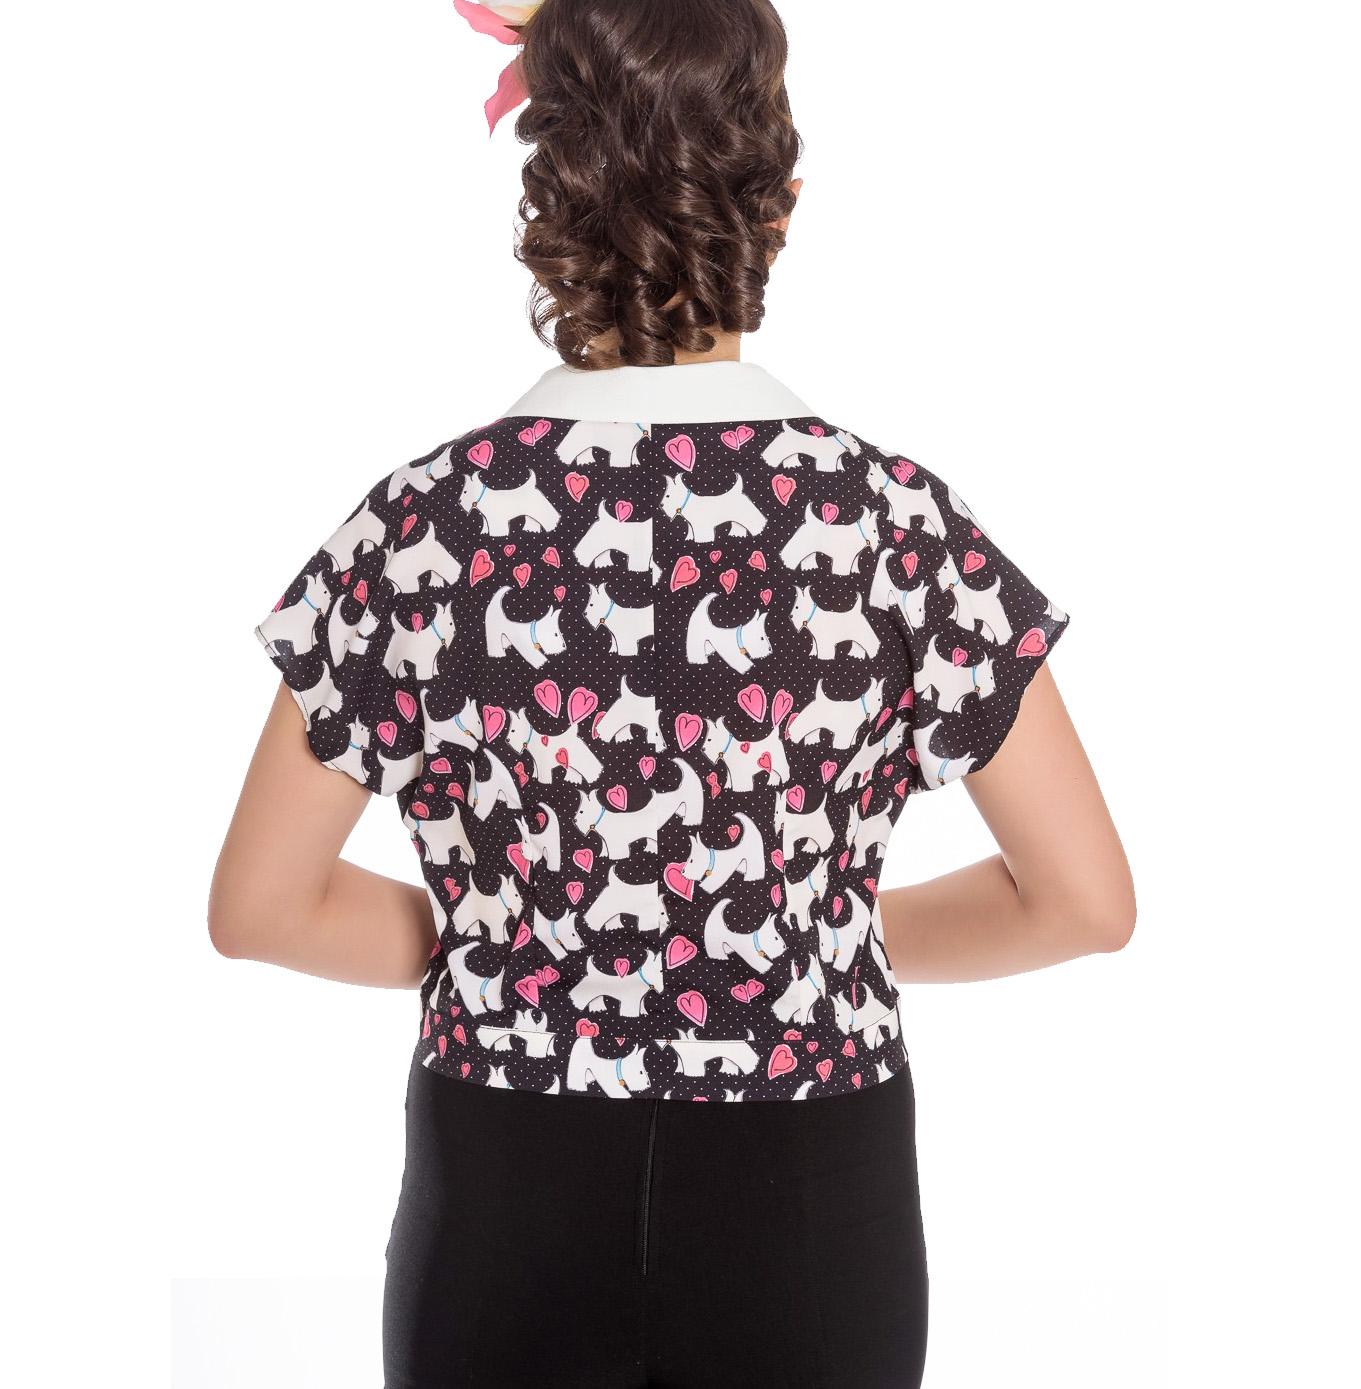 Hell-Bunny-50s-Retro-Top-Scottie-Dog-Heart-AGGY-Cropped-Blouse-Shirt-All-Sizes thumbnail 33